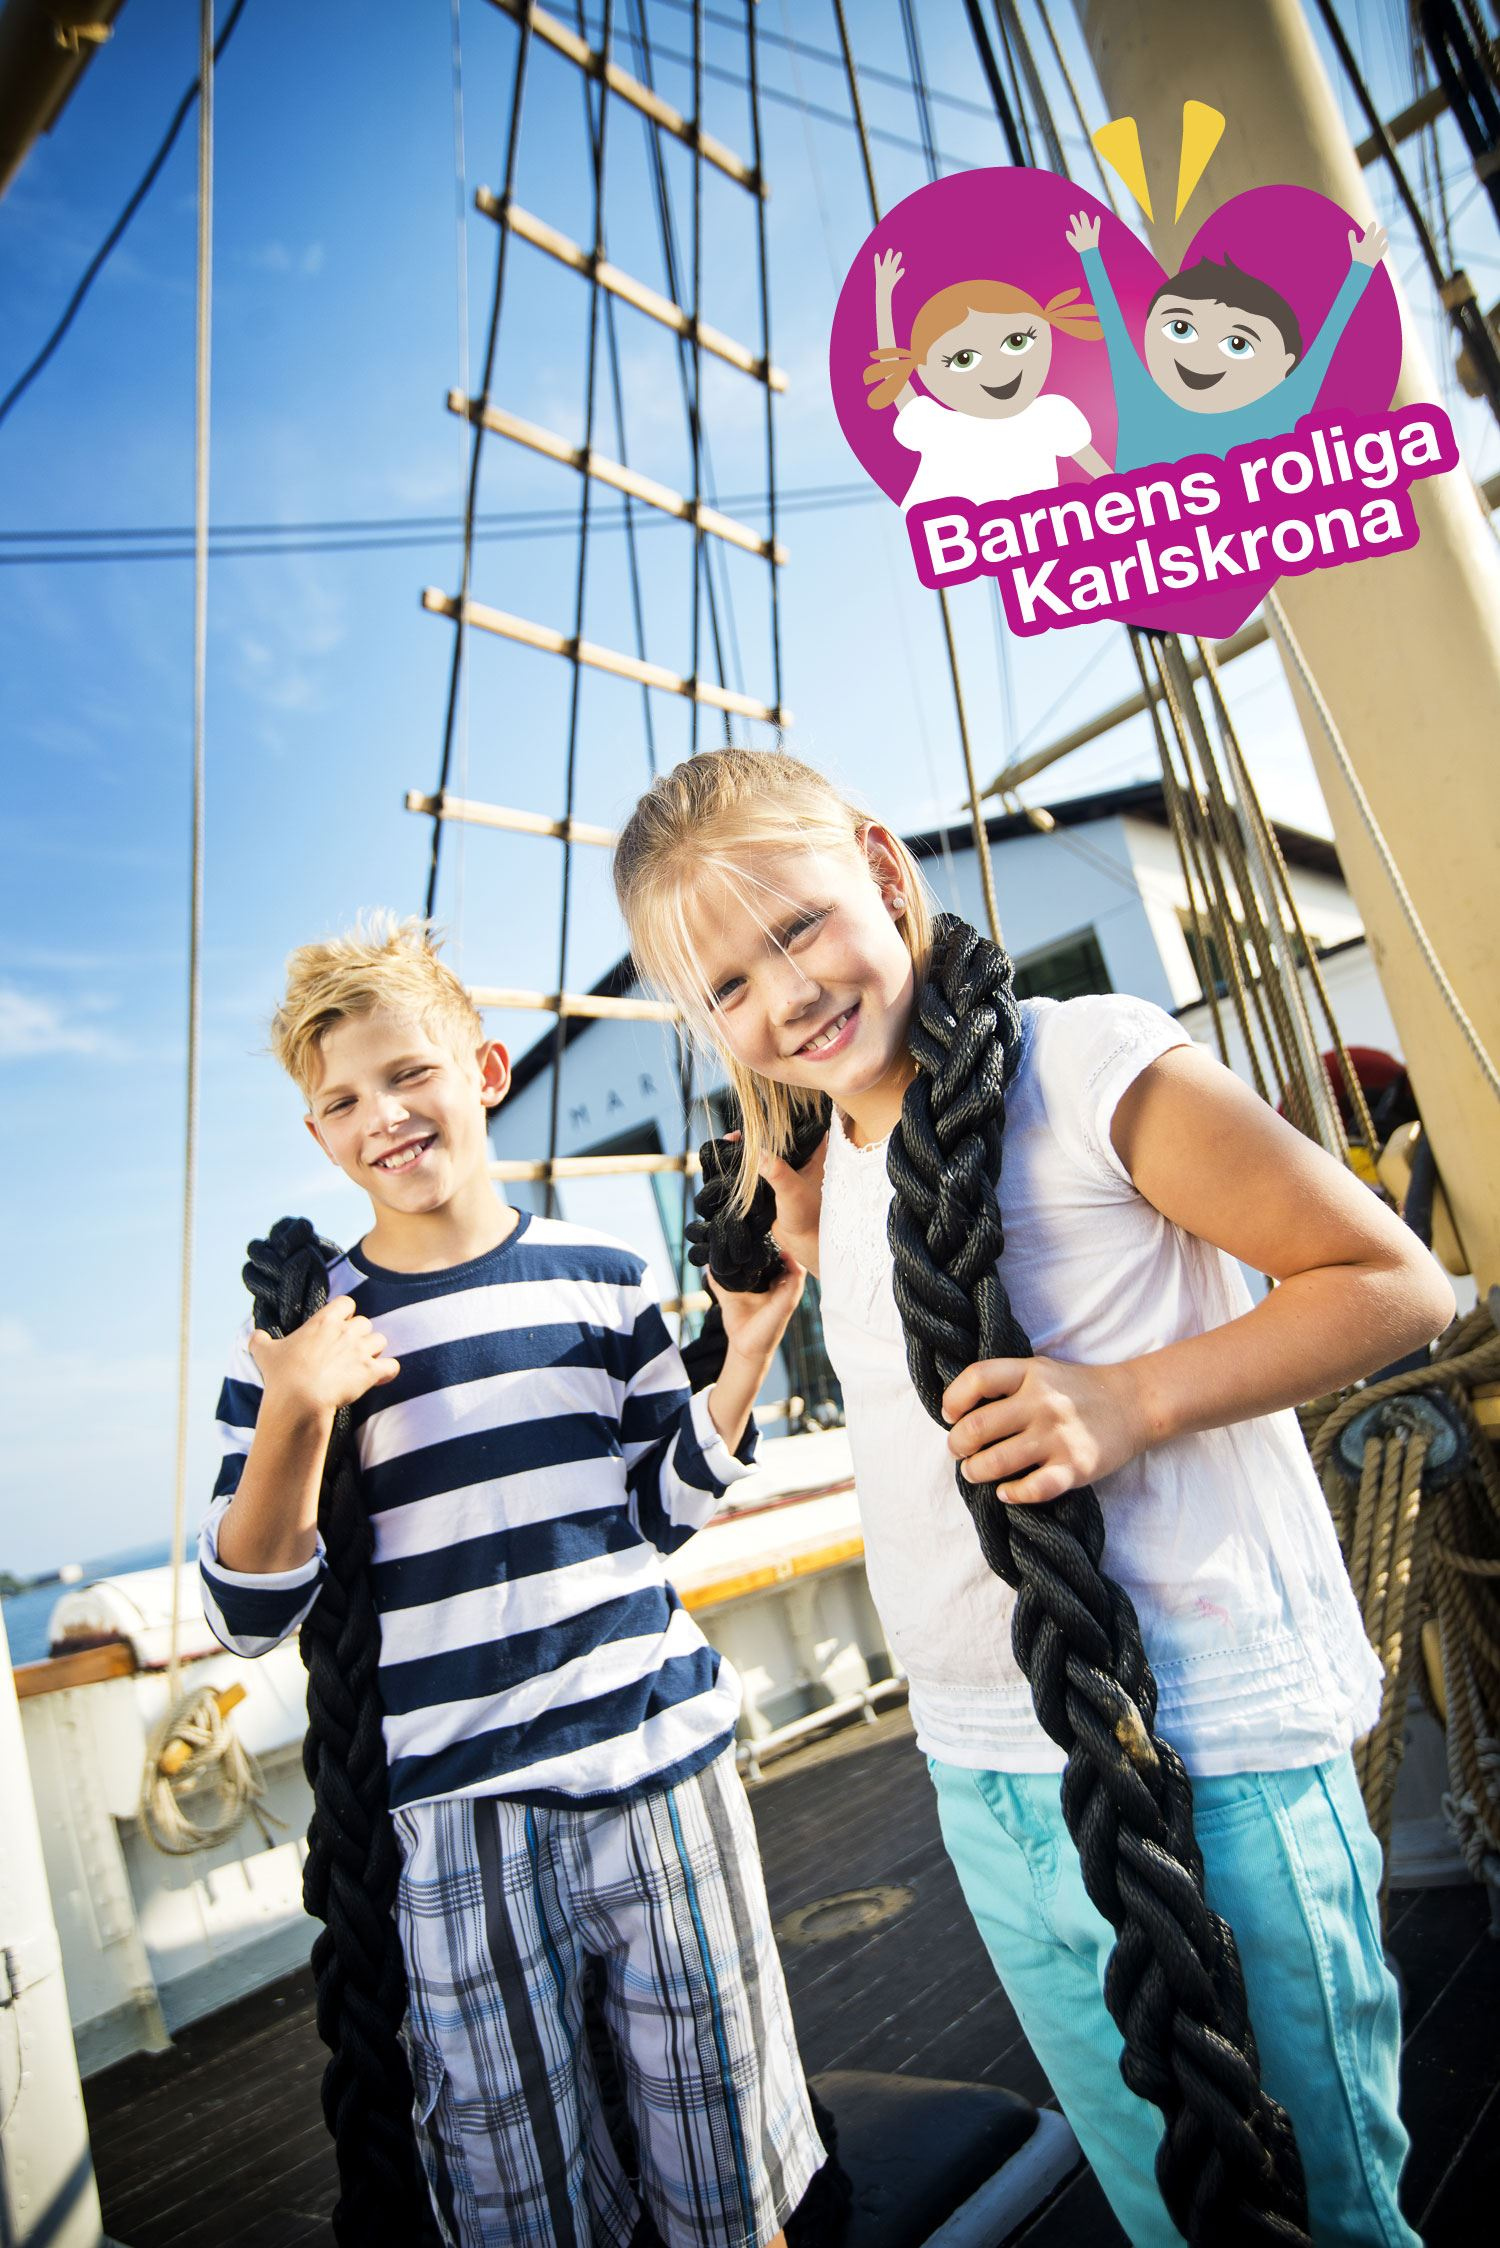 Fun for kids Karlskrona – Advantage card